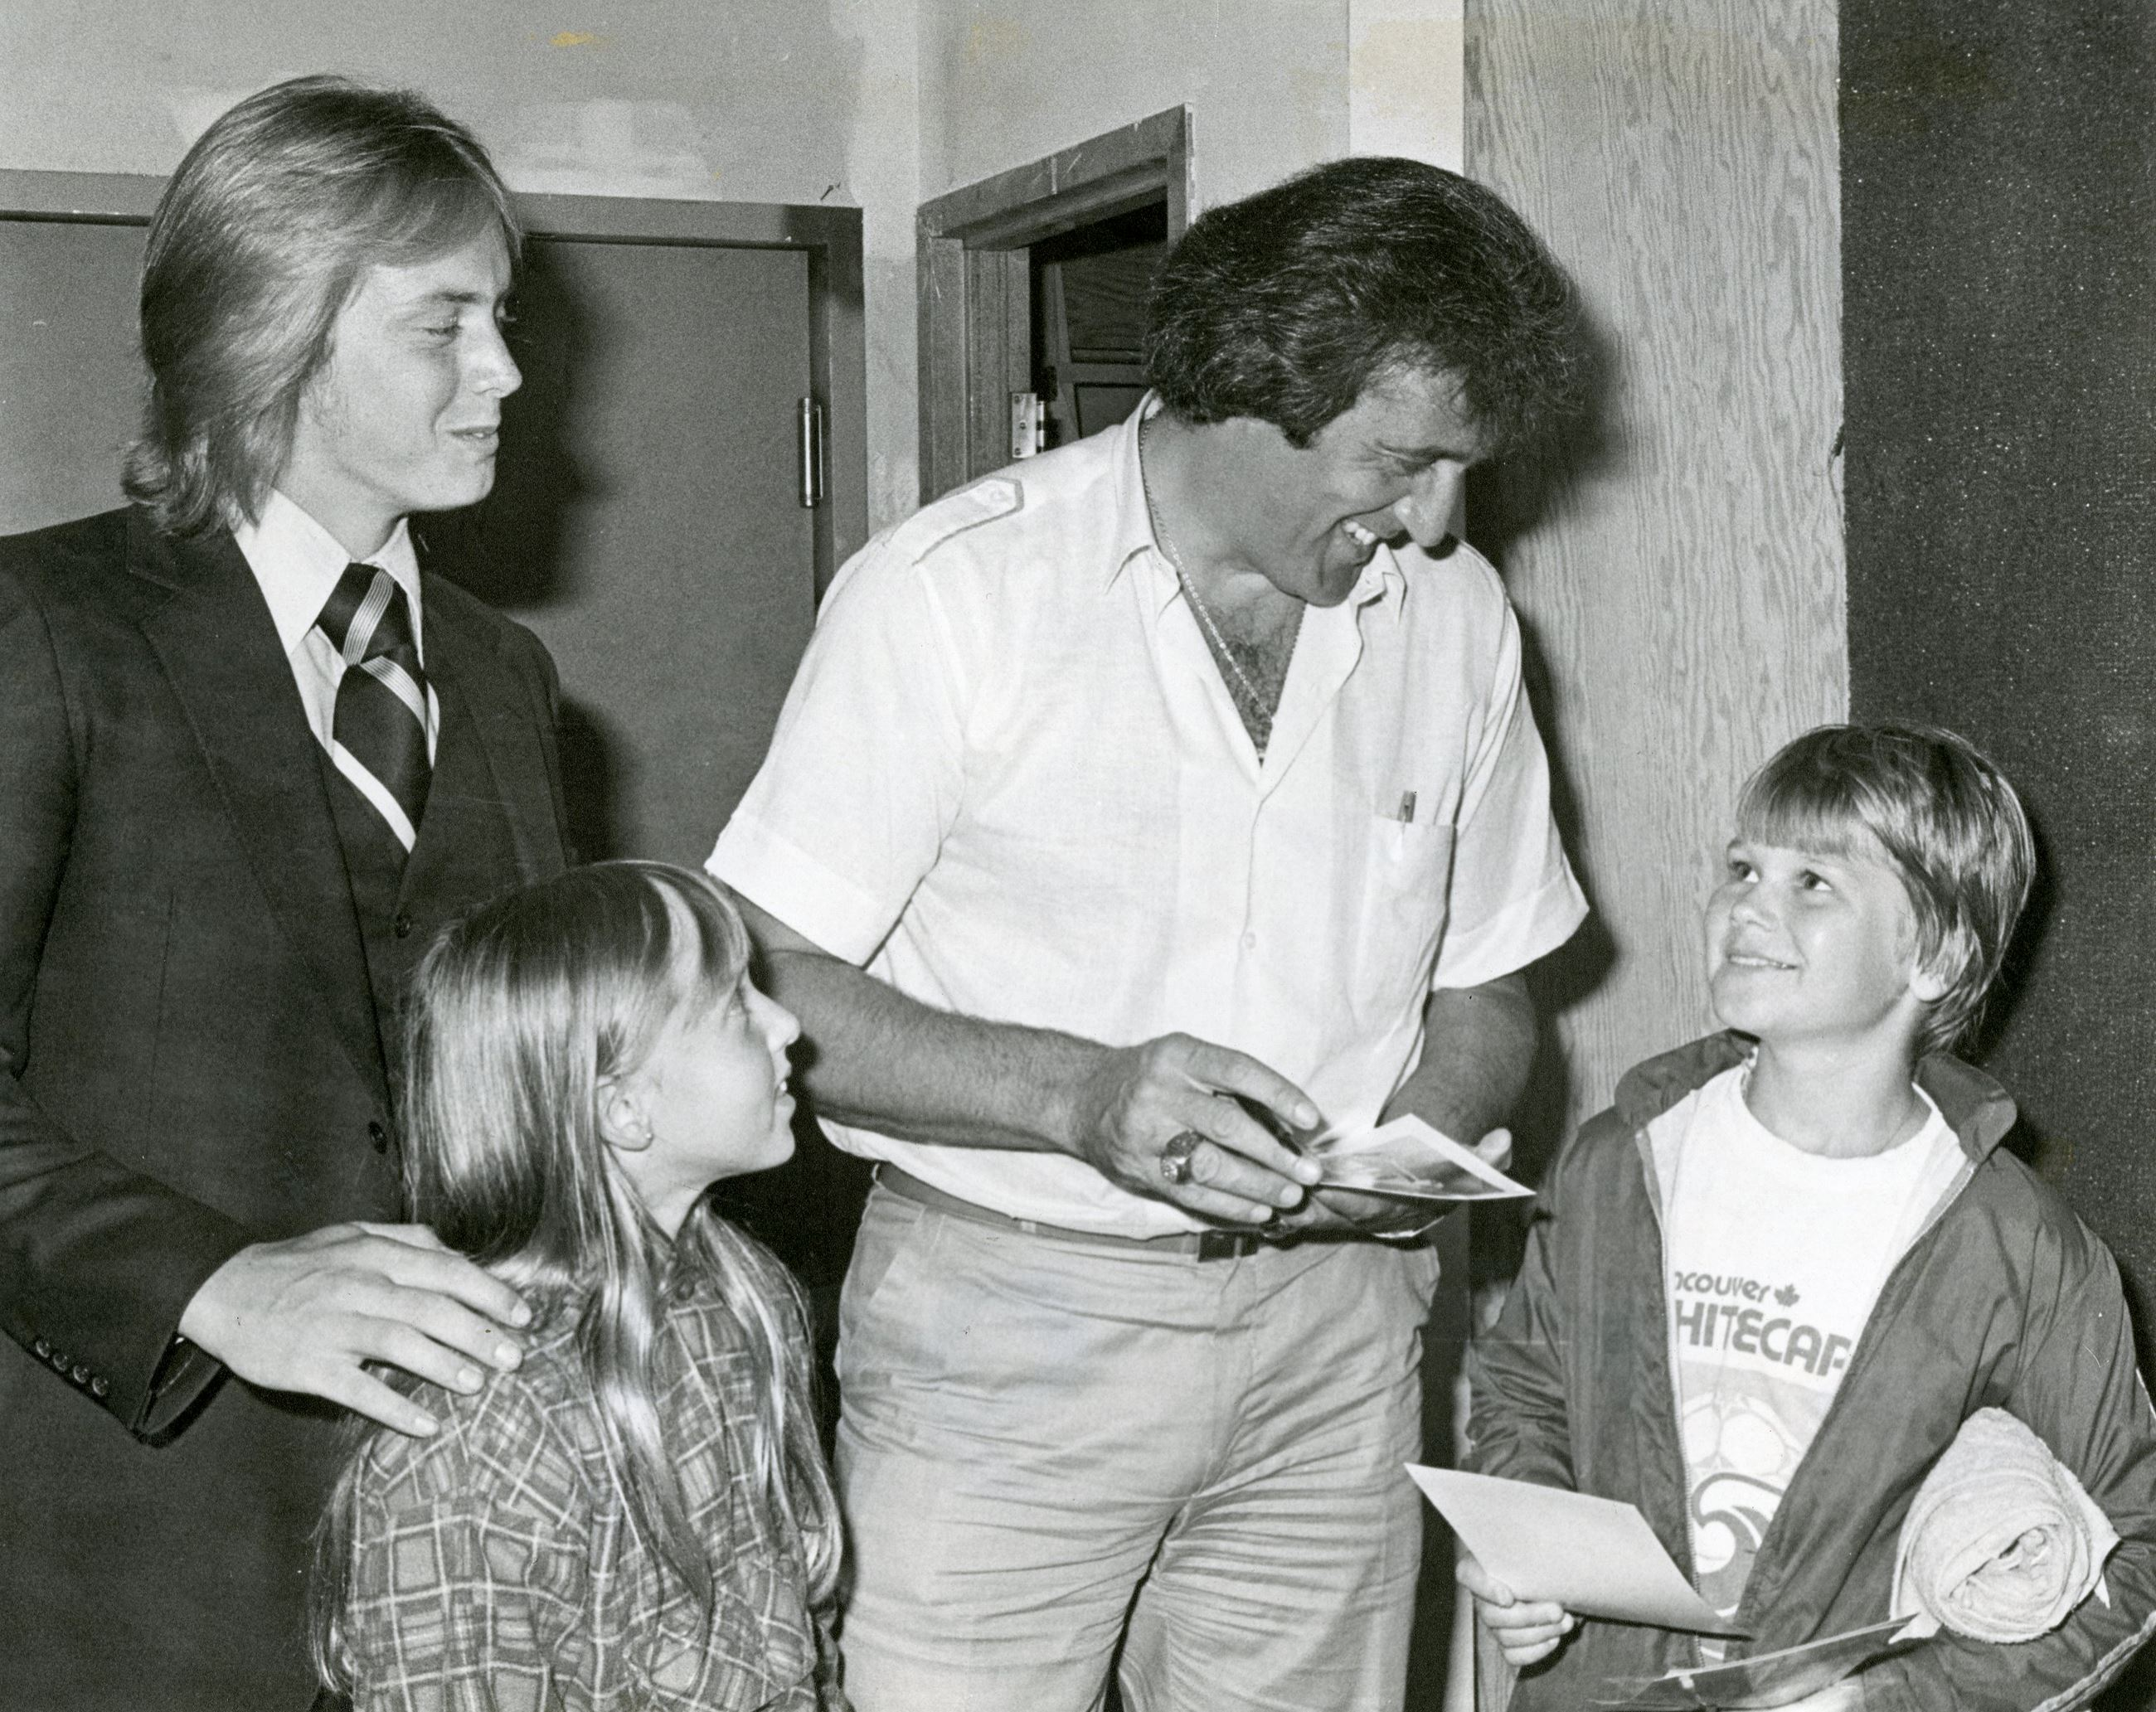 Phil Esposito Signing Autographs at Coquitlam Centre, August 22, 1979 (JPG) Opens in new window